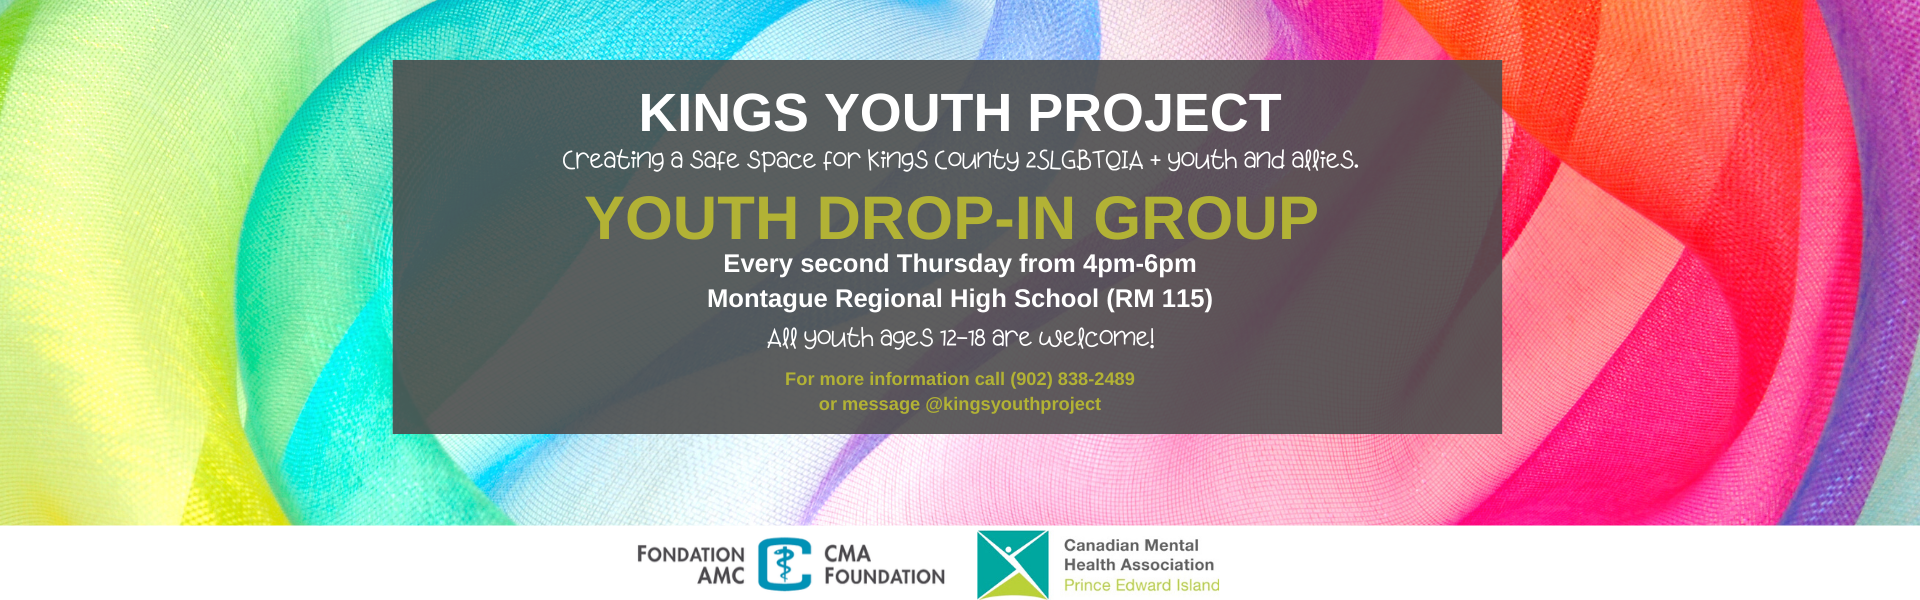 Kings Youth Project